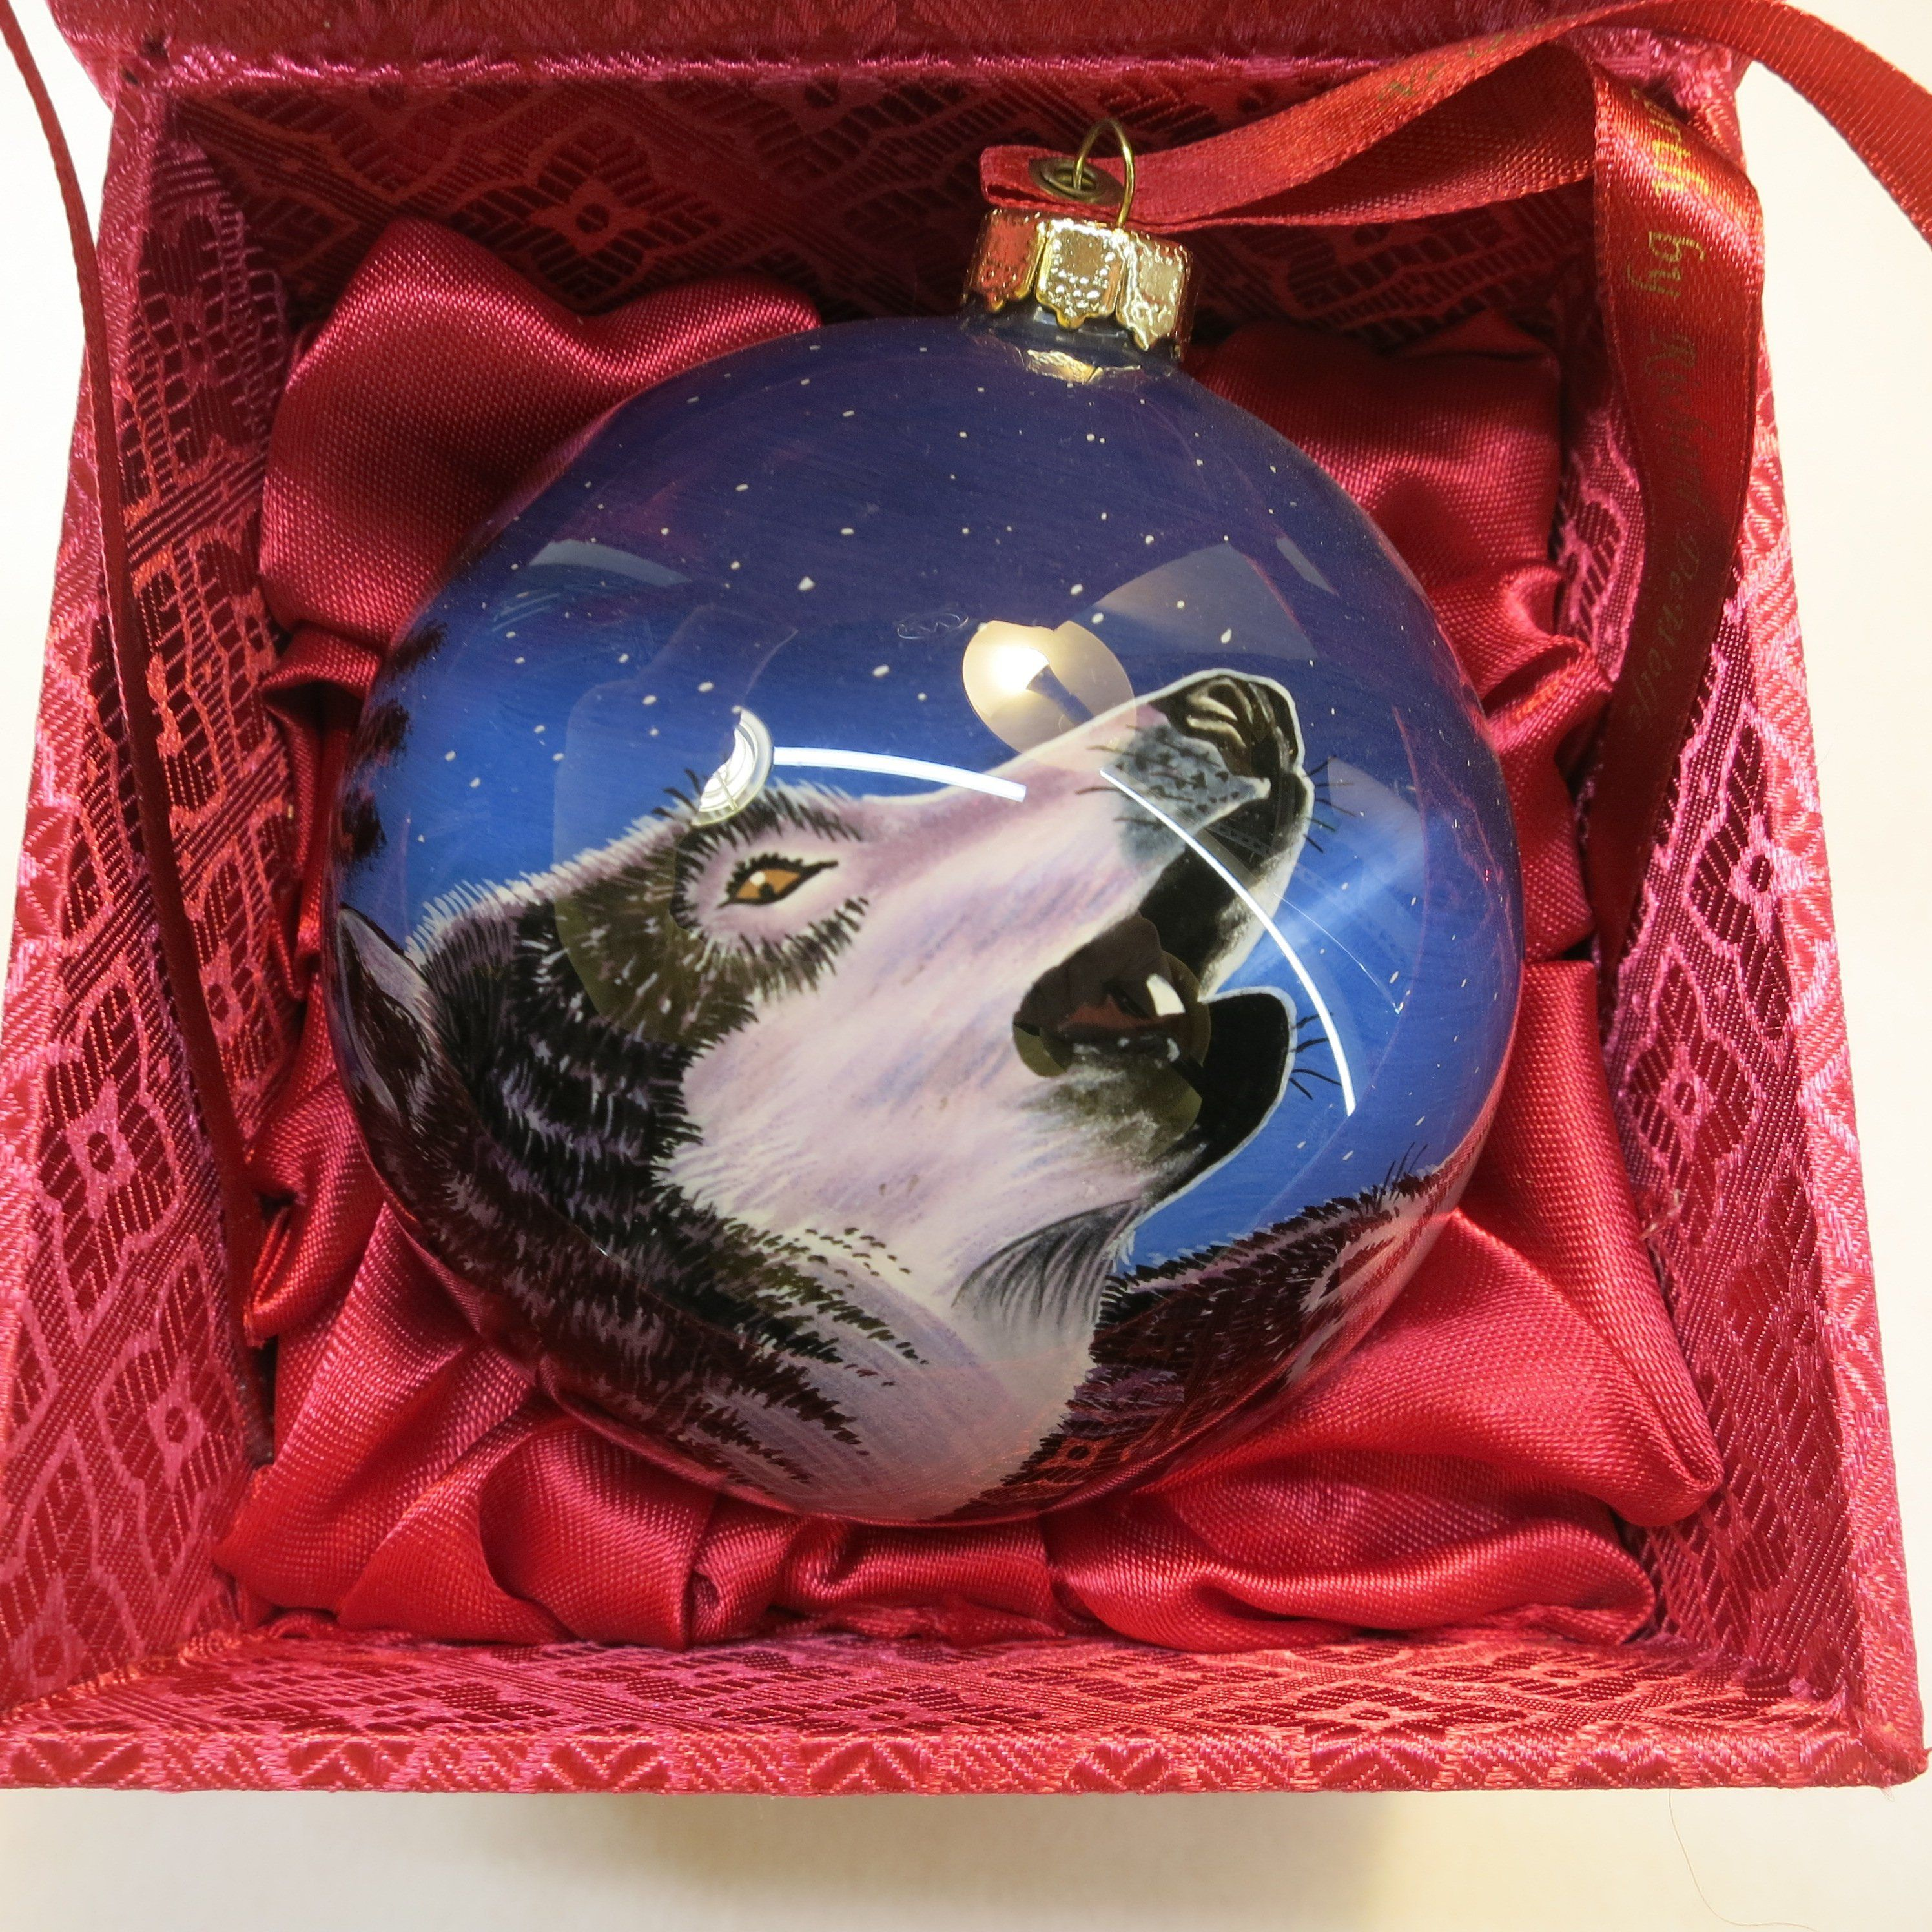 Vintage Ne Qwa Art Song Of The North Wolf Richard Dewolf Christmas Ornament Painted On The Inside Christmas Ornaments Ornaments Art